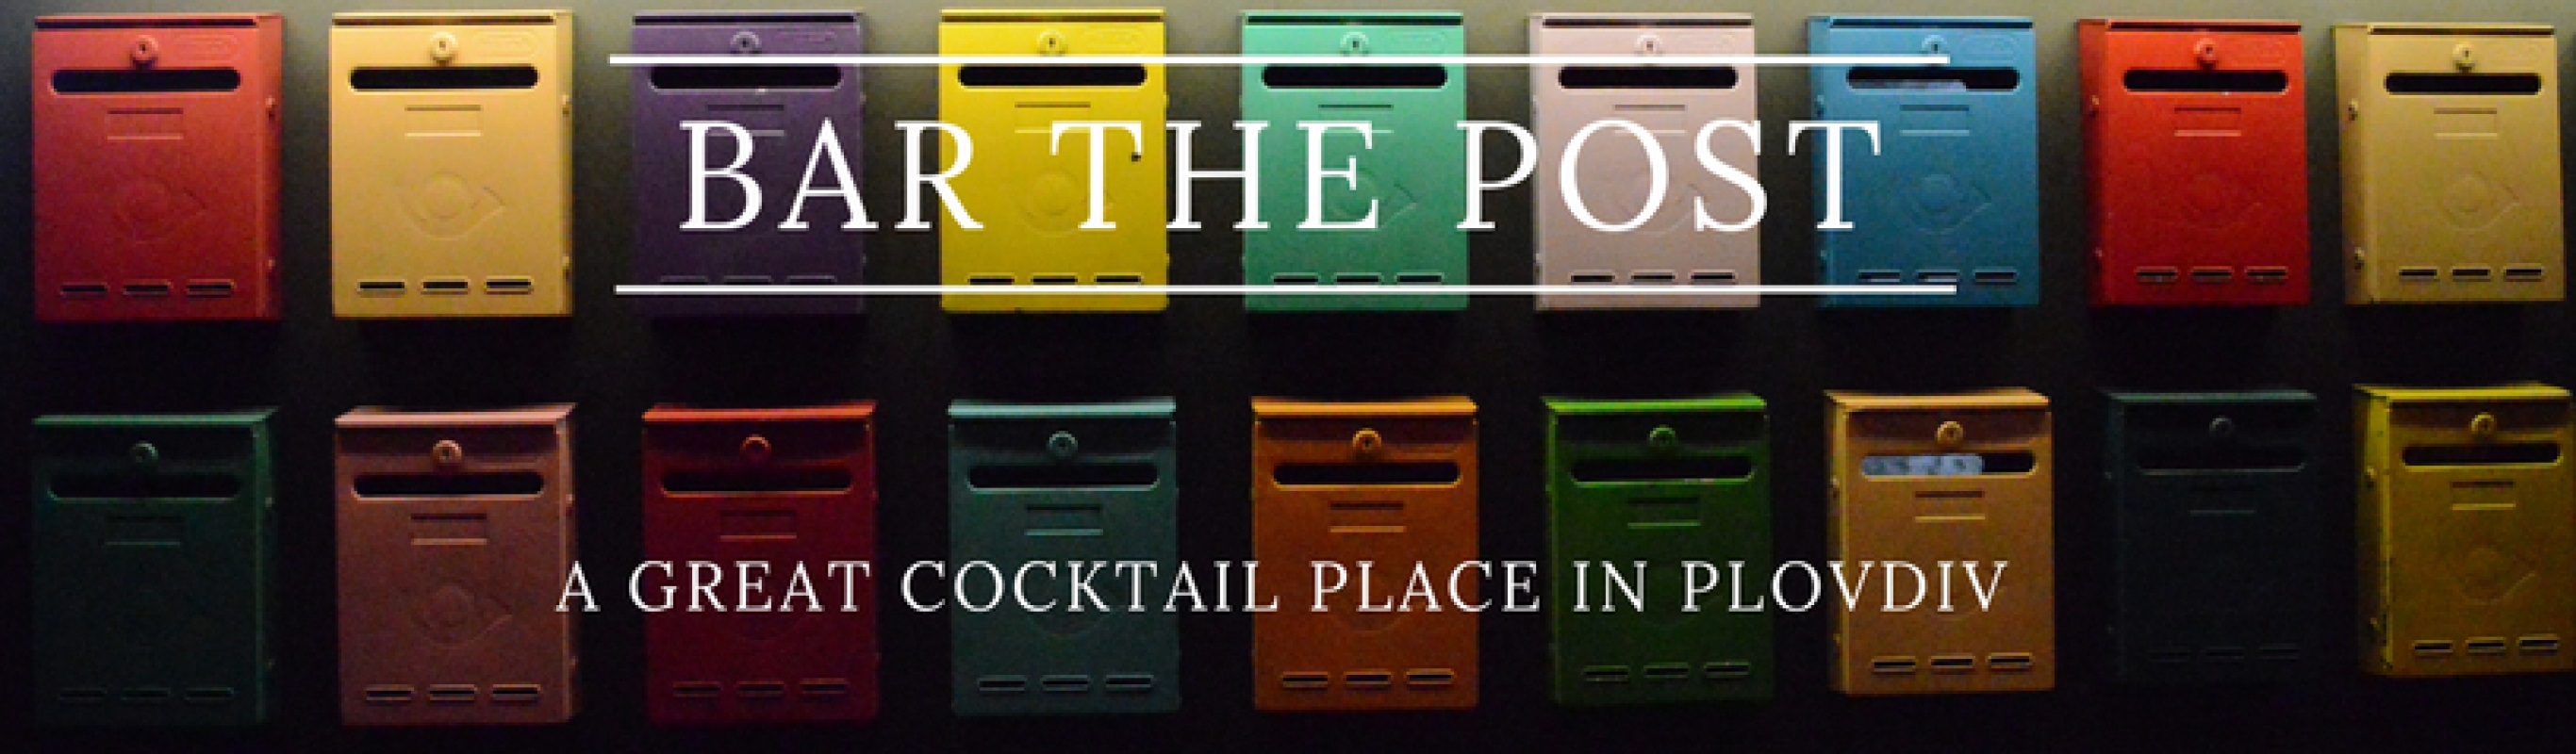 Bar The Post – the new place for good cocktails in Plovdiv